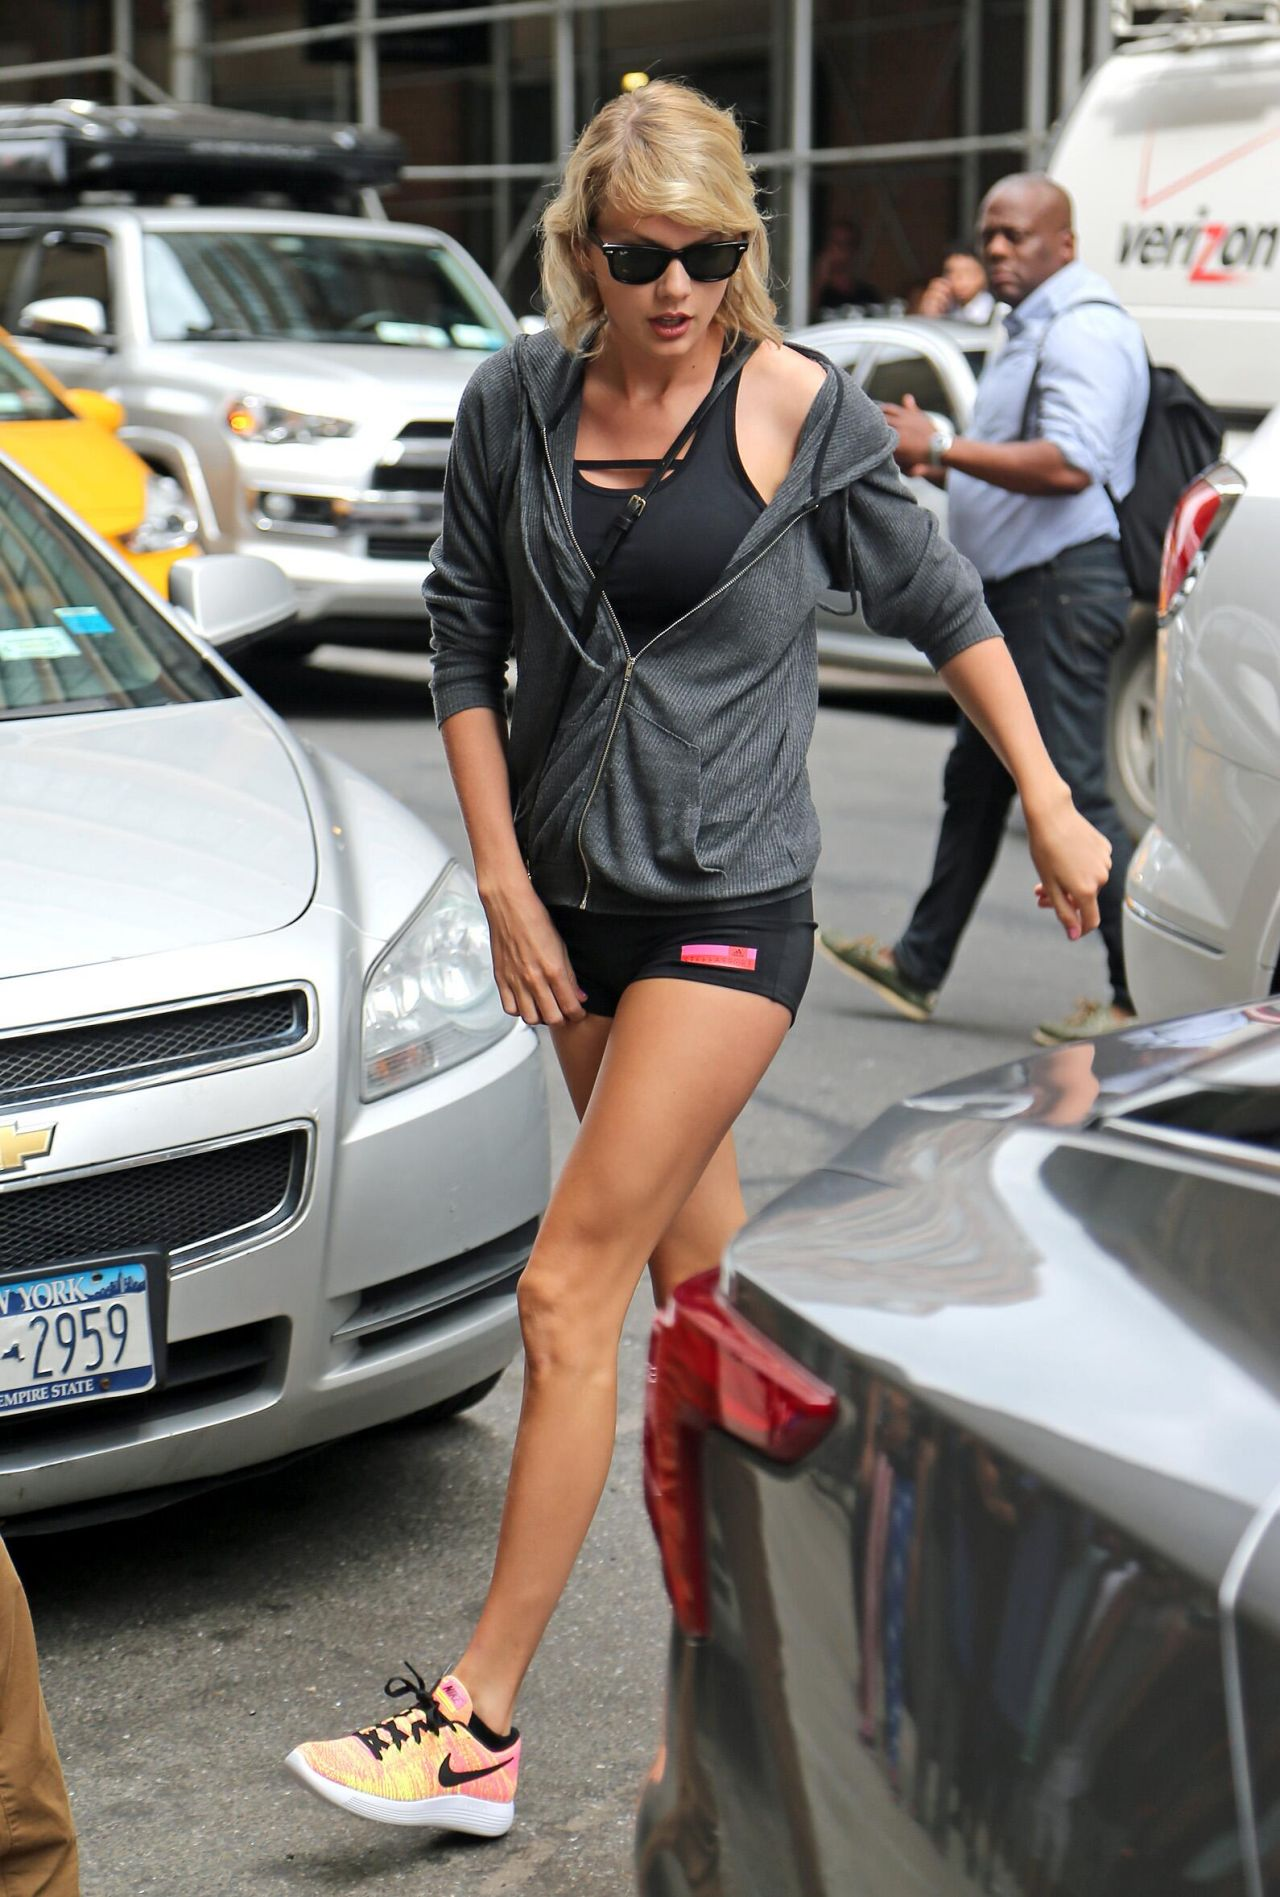 Taylor Swift Shows Off Her Legs Morning Visit To Gym In